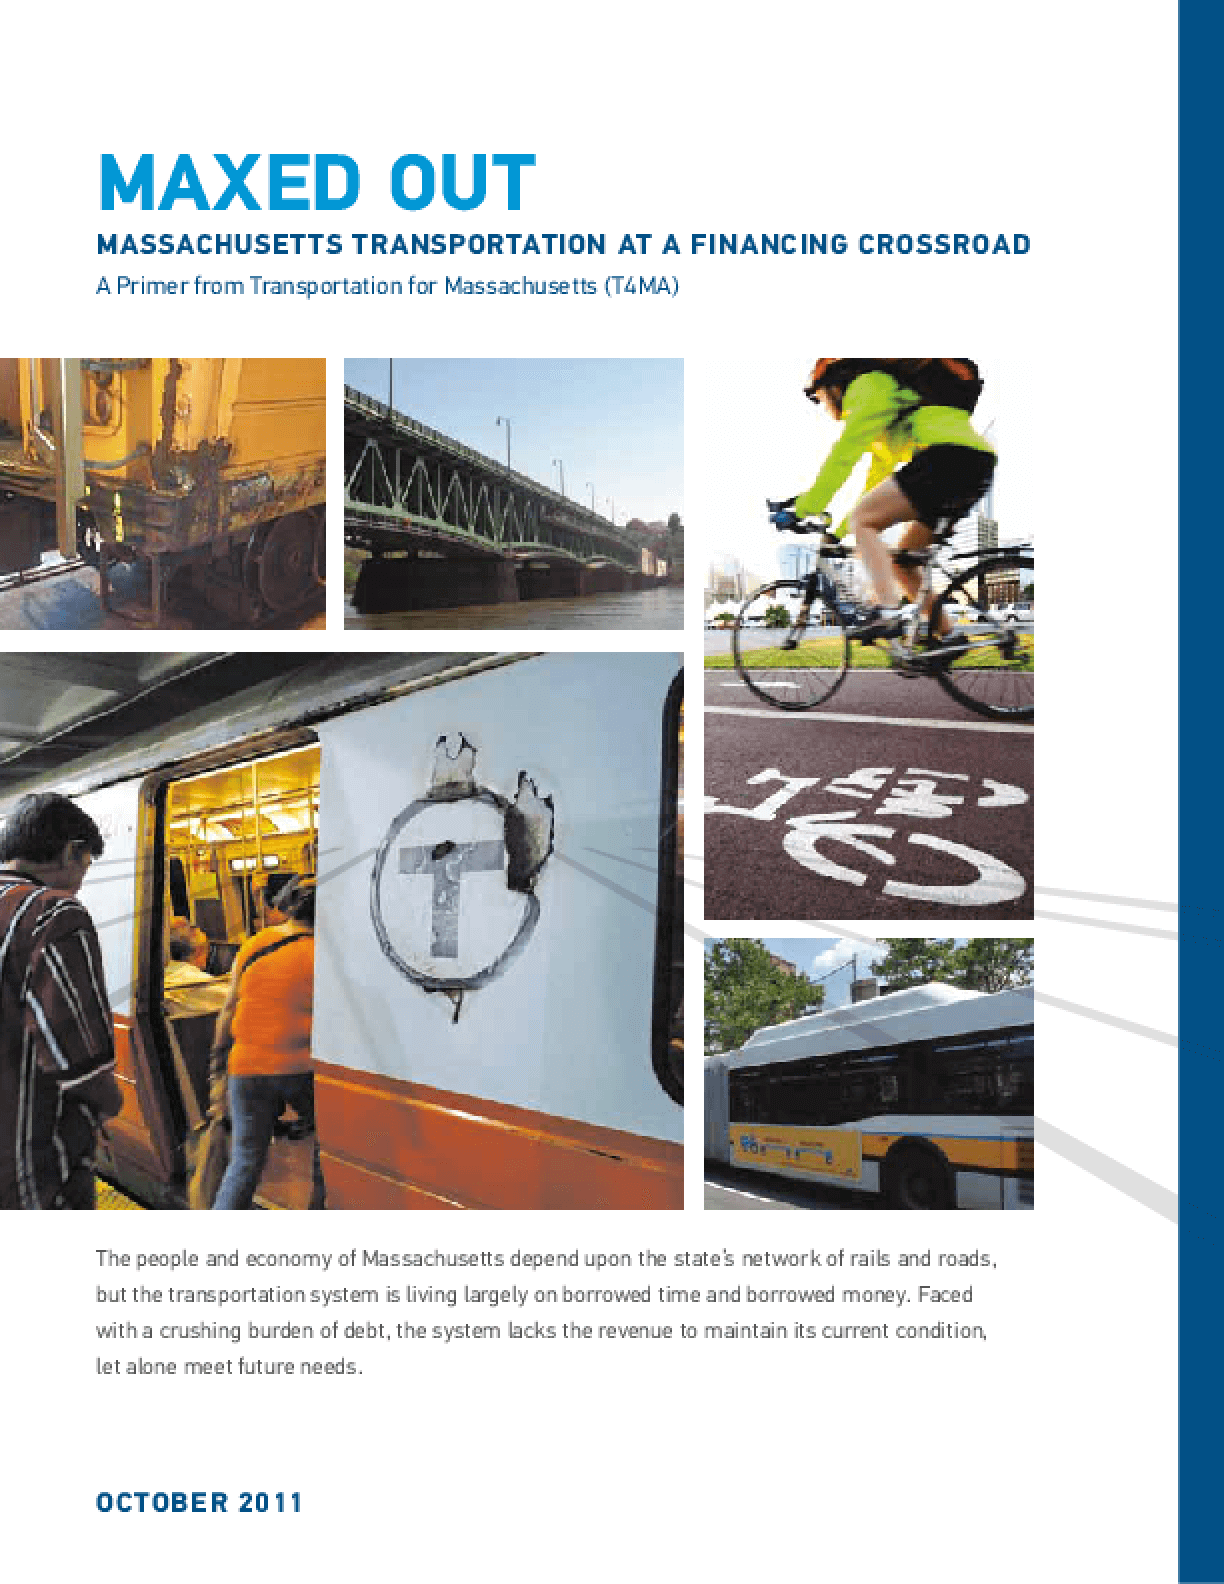 Maxed Out: Massachusetts Transportation at a Financing Crossroad